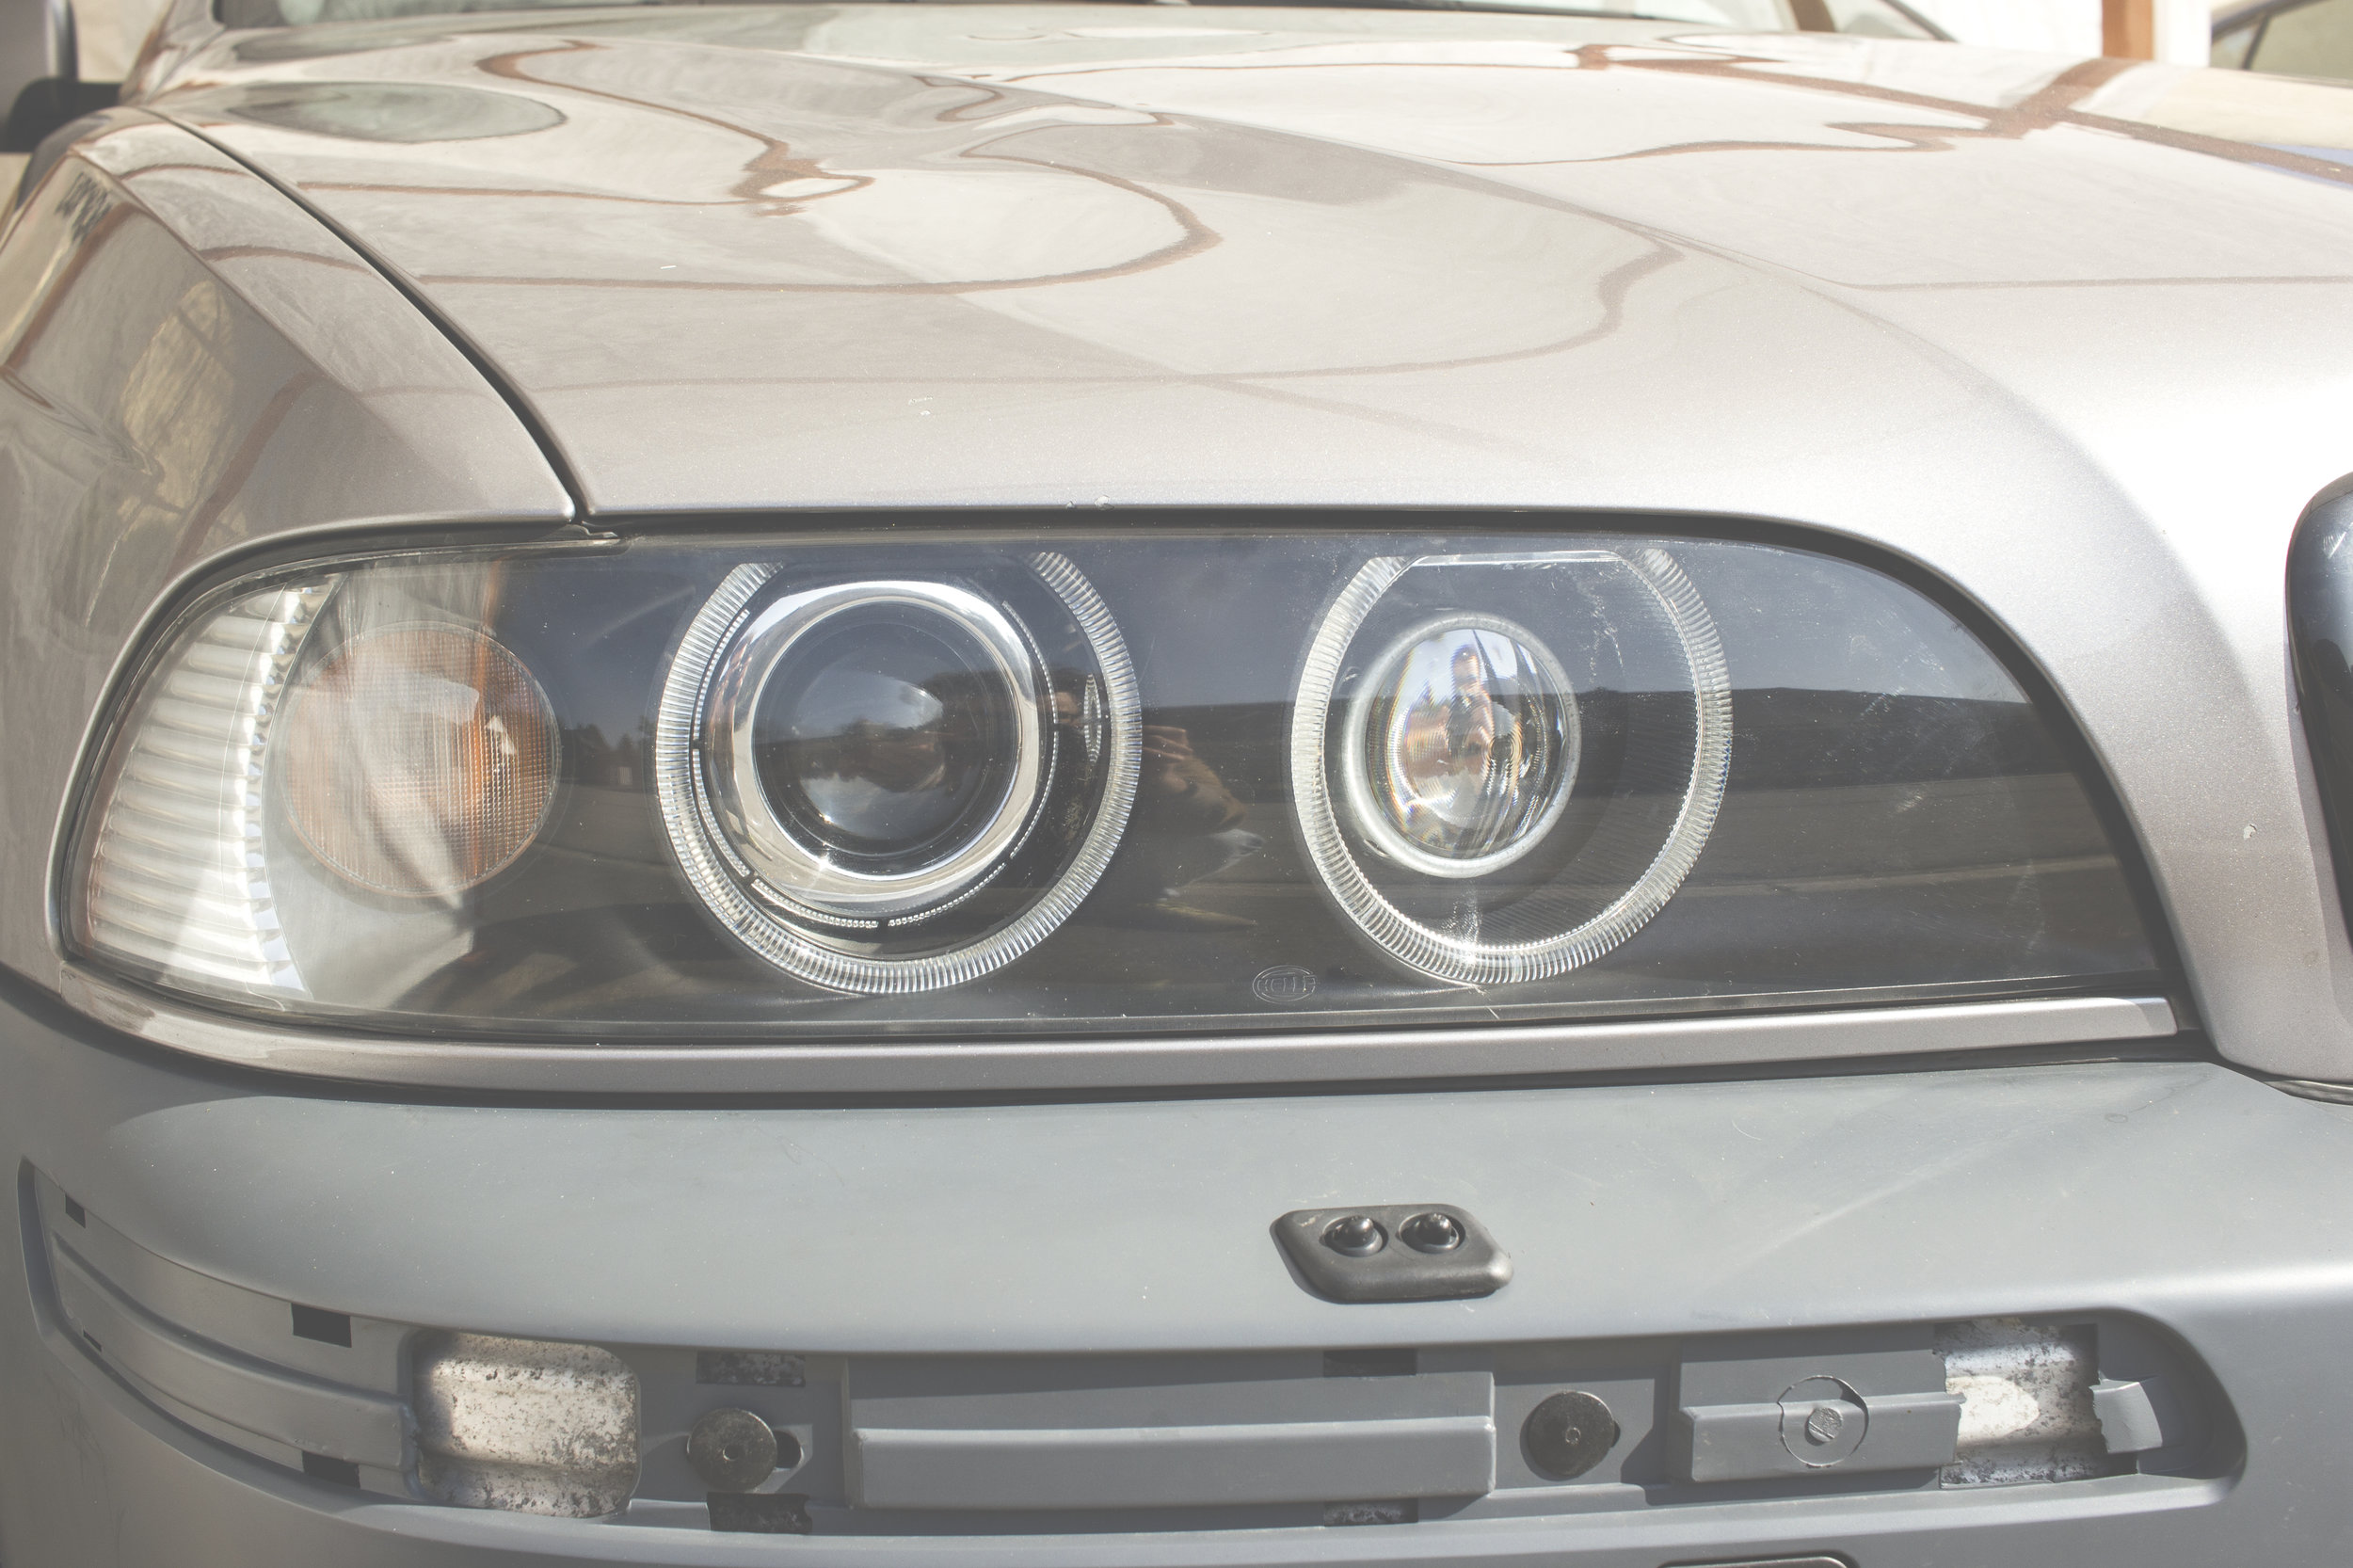 Mömus BMW E39 Front Quad Projector Mod Headlights Facelift close up